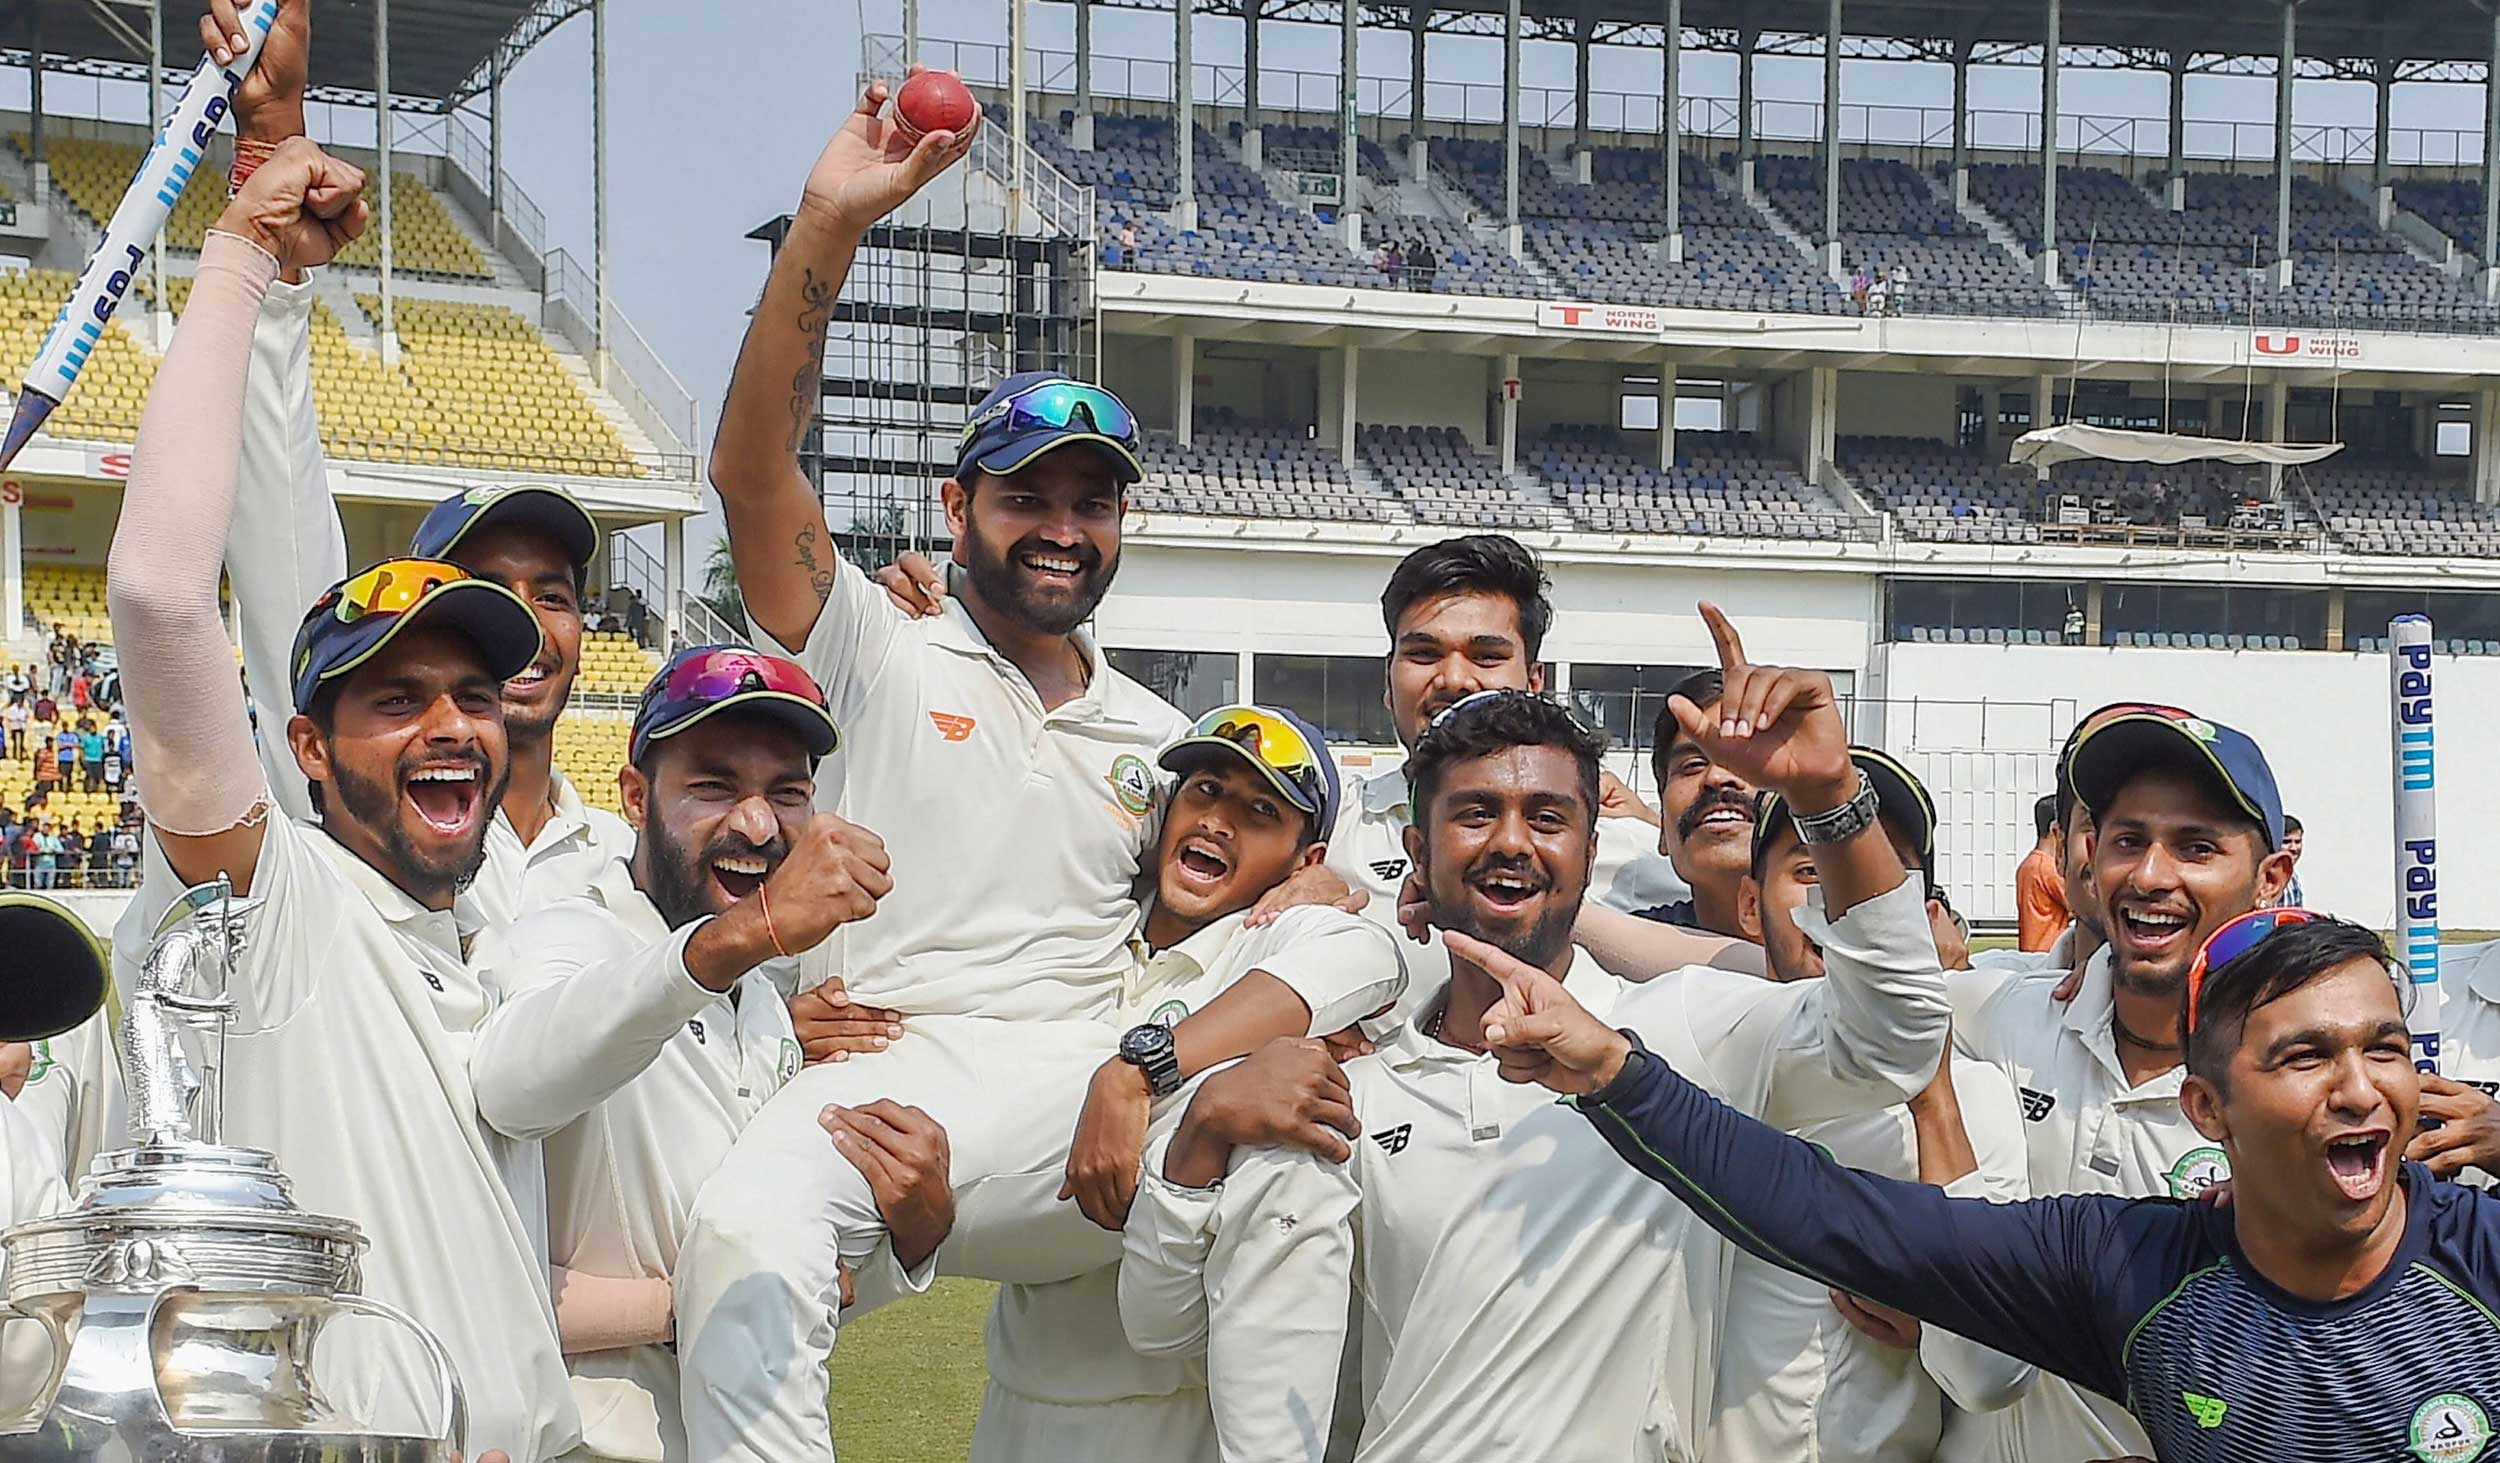 Vidarbha team with the trophy after defeating Saurashtra in the final cricket match of the Ranji Trophy 2018- 19, in Nagpur, on February 7, 2019.